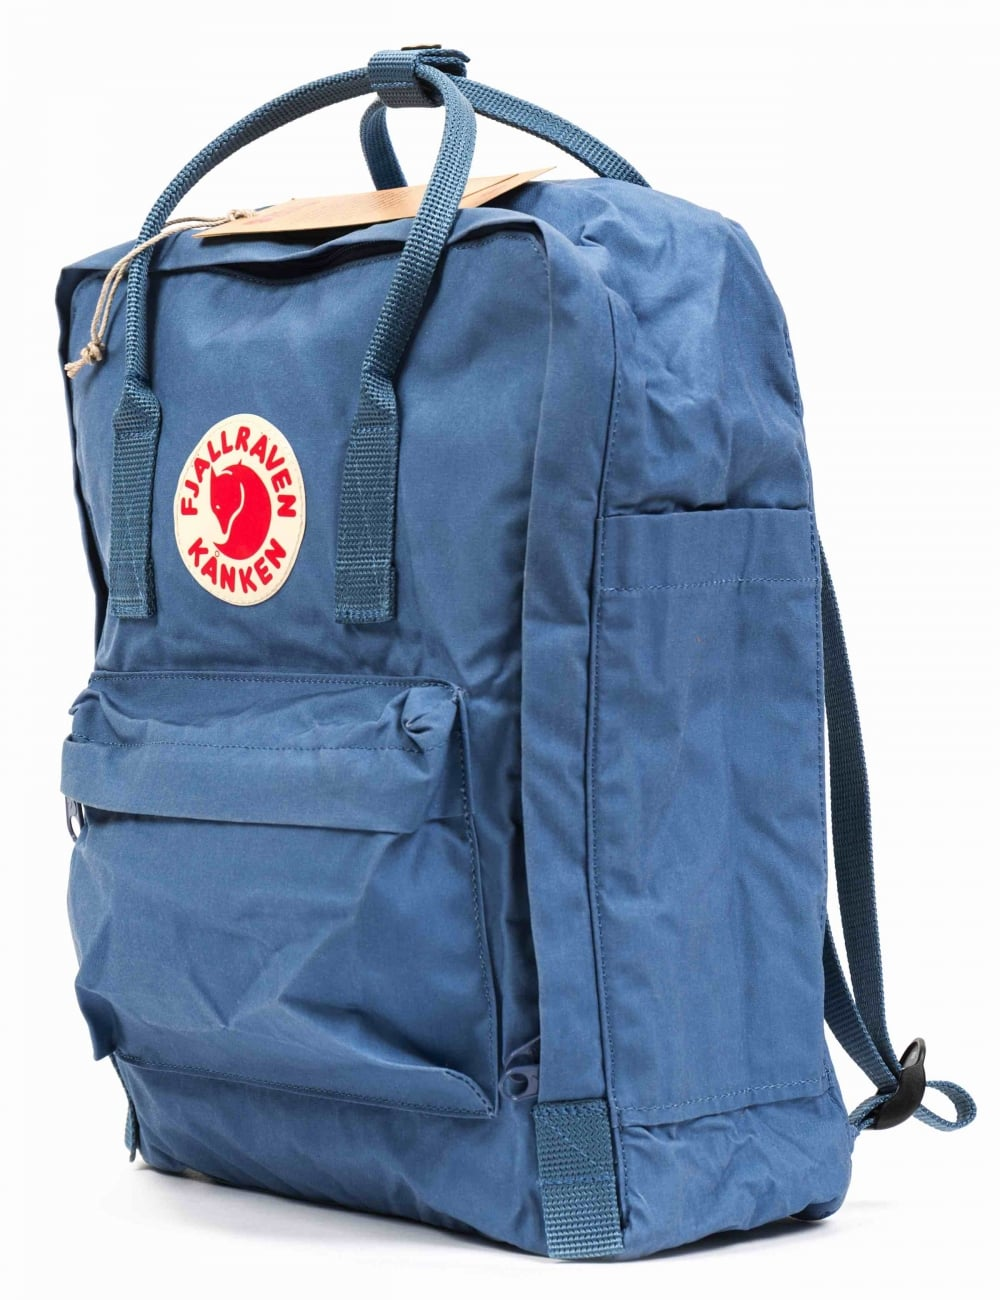 1d69b6890f5 Fjallraven Kanken Classic Backpack - Blue Ridge - Accessories from ...